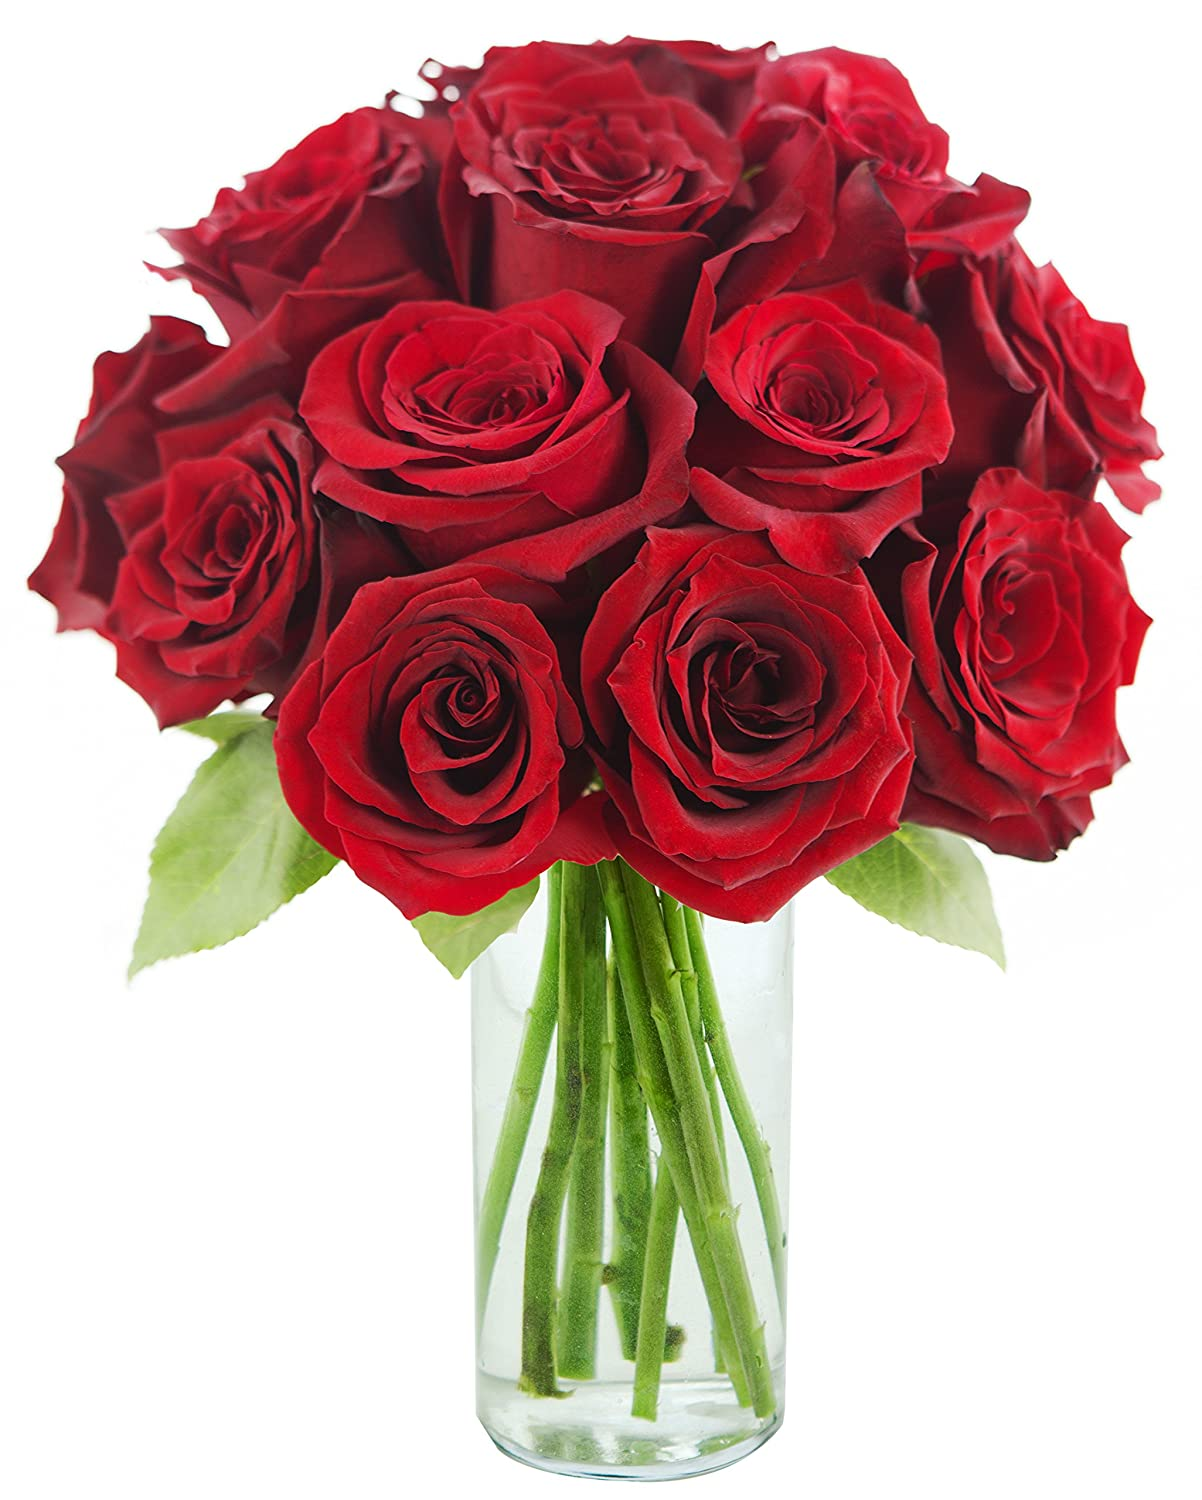 amazoncom kabloom romantic red rose bouquet 12 fresh cut red roses long stemmed with vase grocery gourmet food - Garden Rose Bouquet